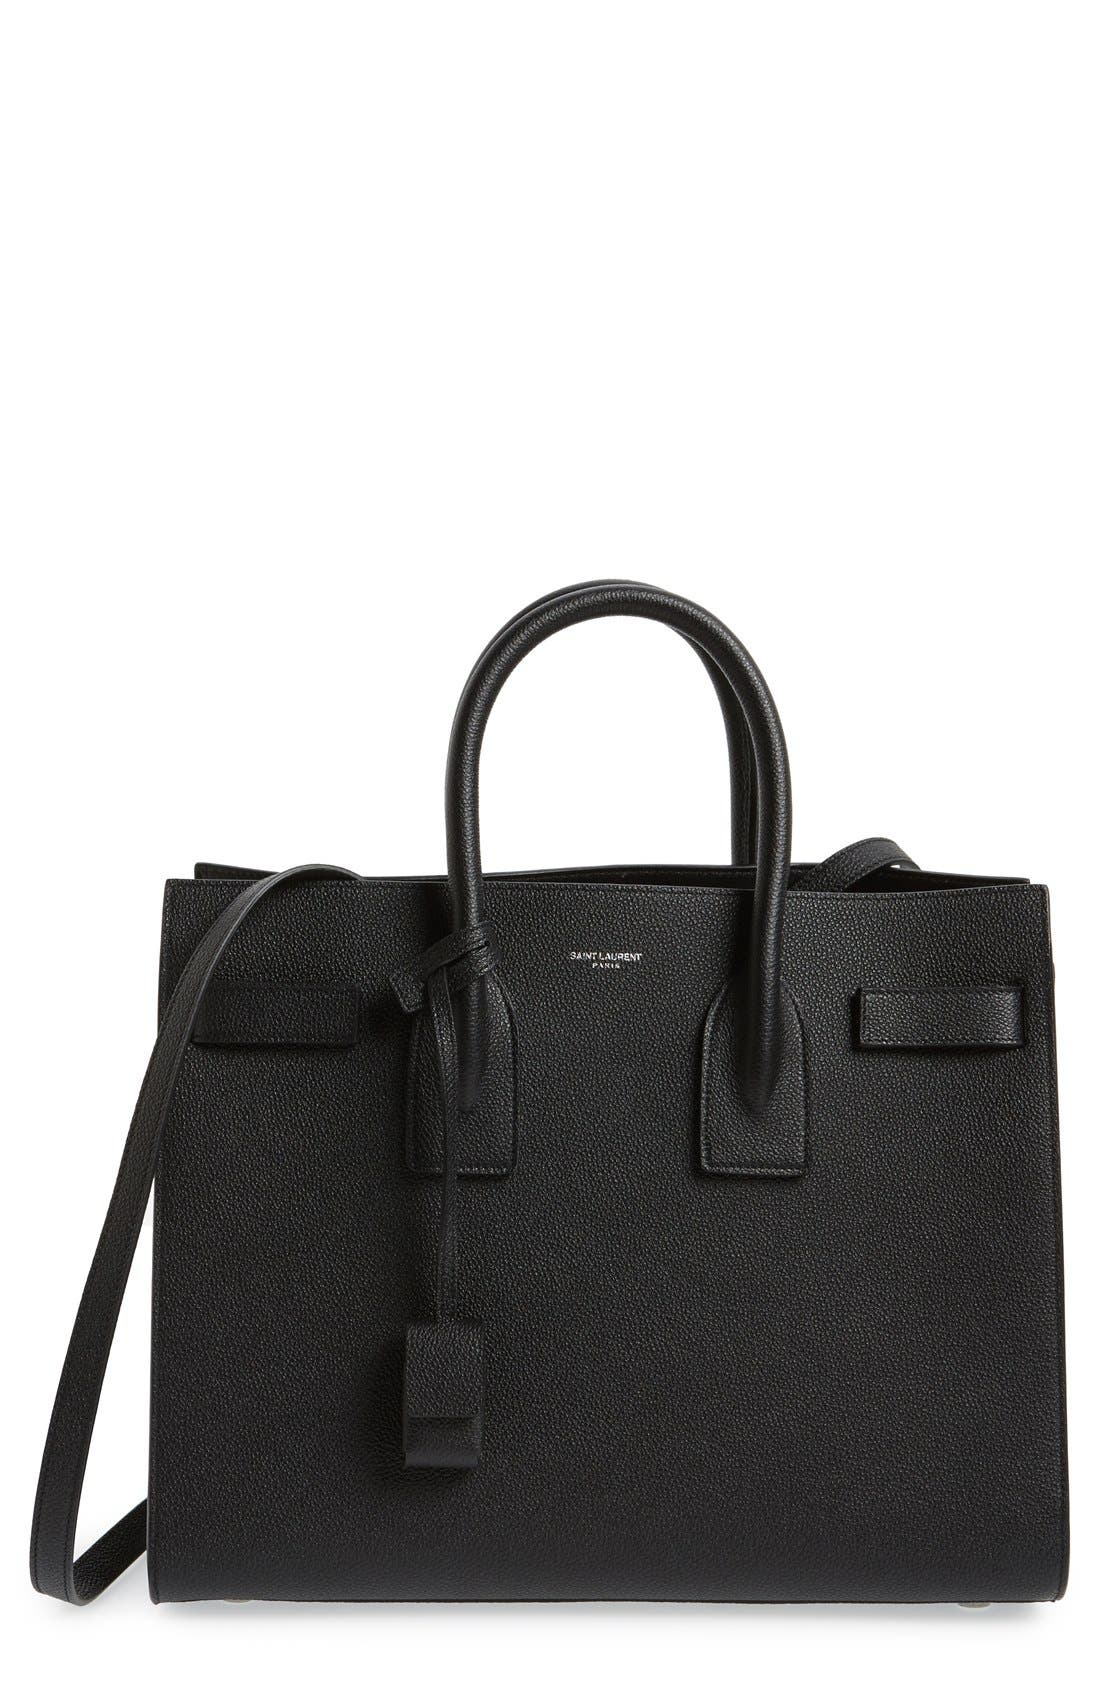 'Small Sac de Jour' Leather Tote,                             Main thumbnail 1, color,                             NOIR